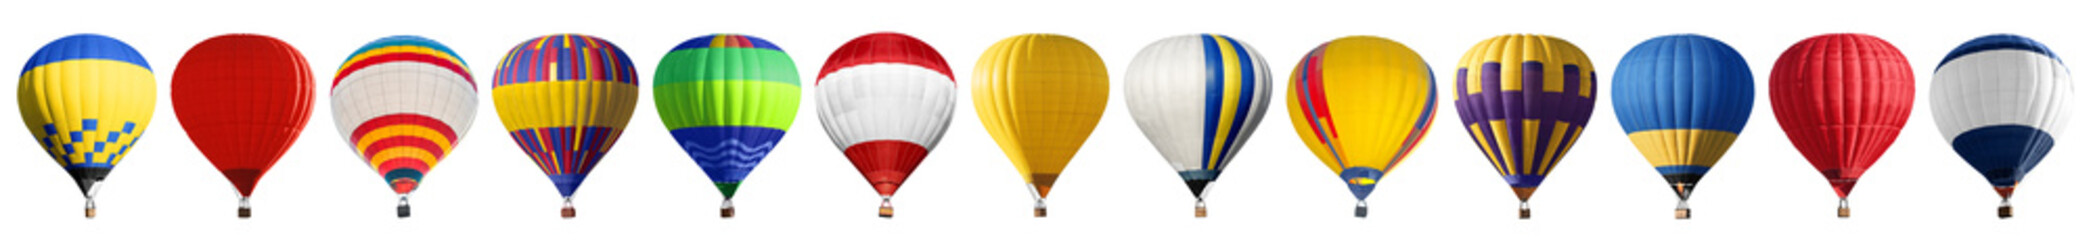 Deurstickers Ballon Set of bright colorful hot air balloons on white background